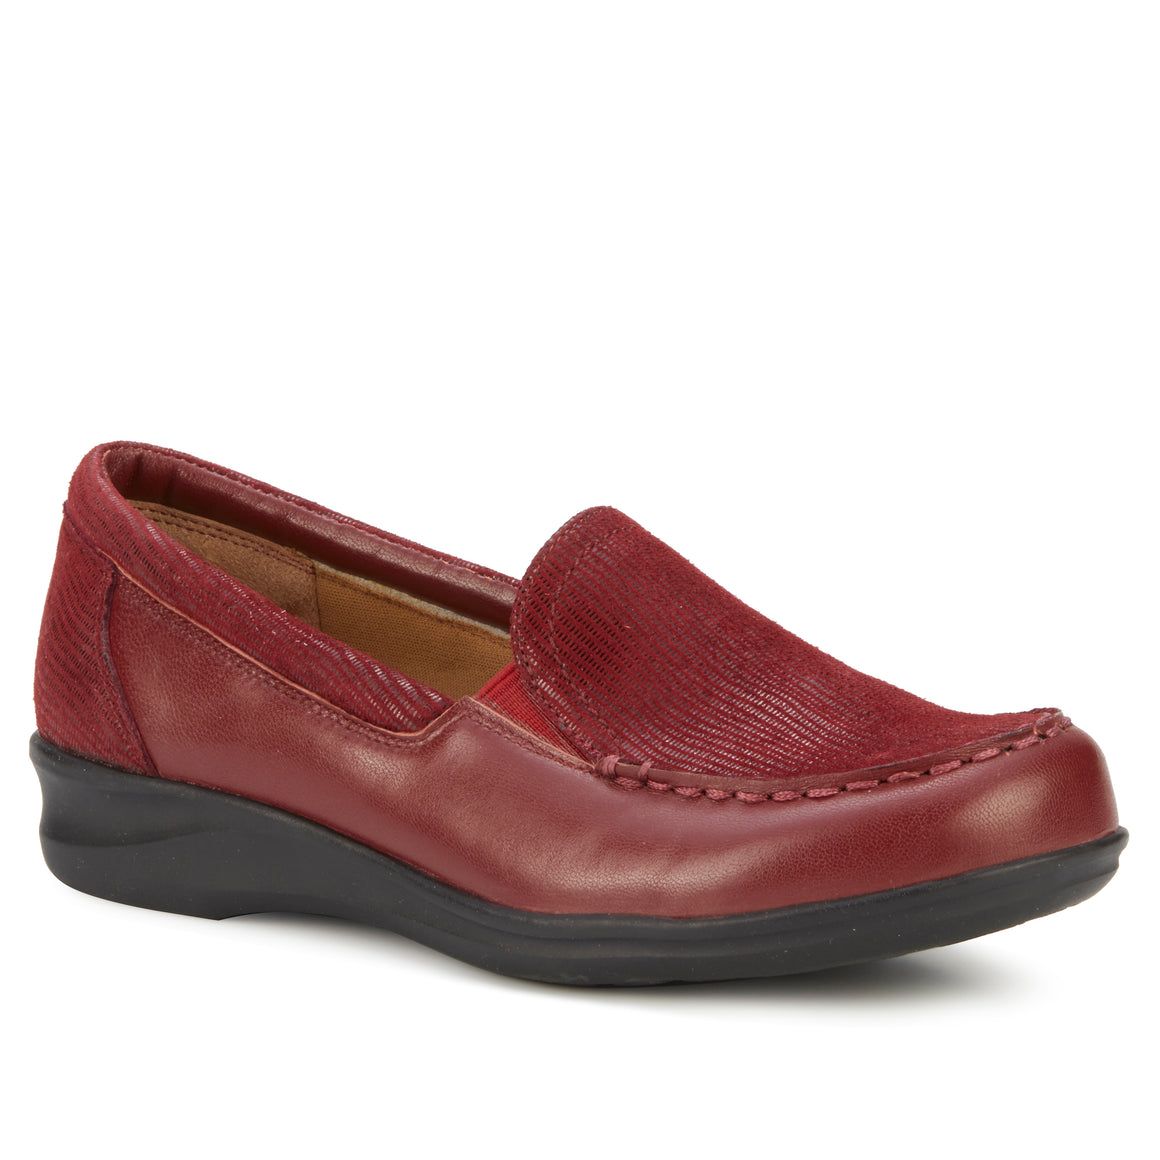 Clayton Casual Slip-On: Cranberry Leather and Patent Lizard Print NEW